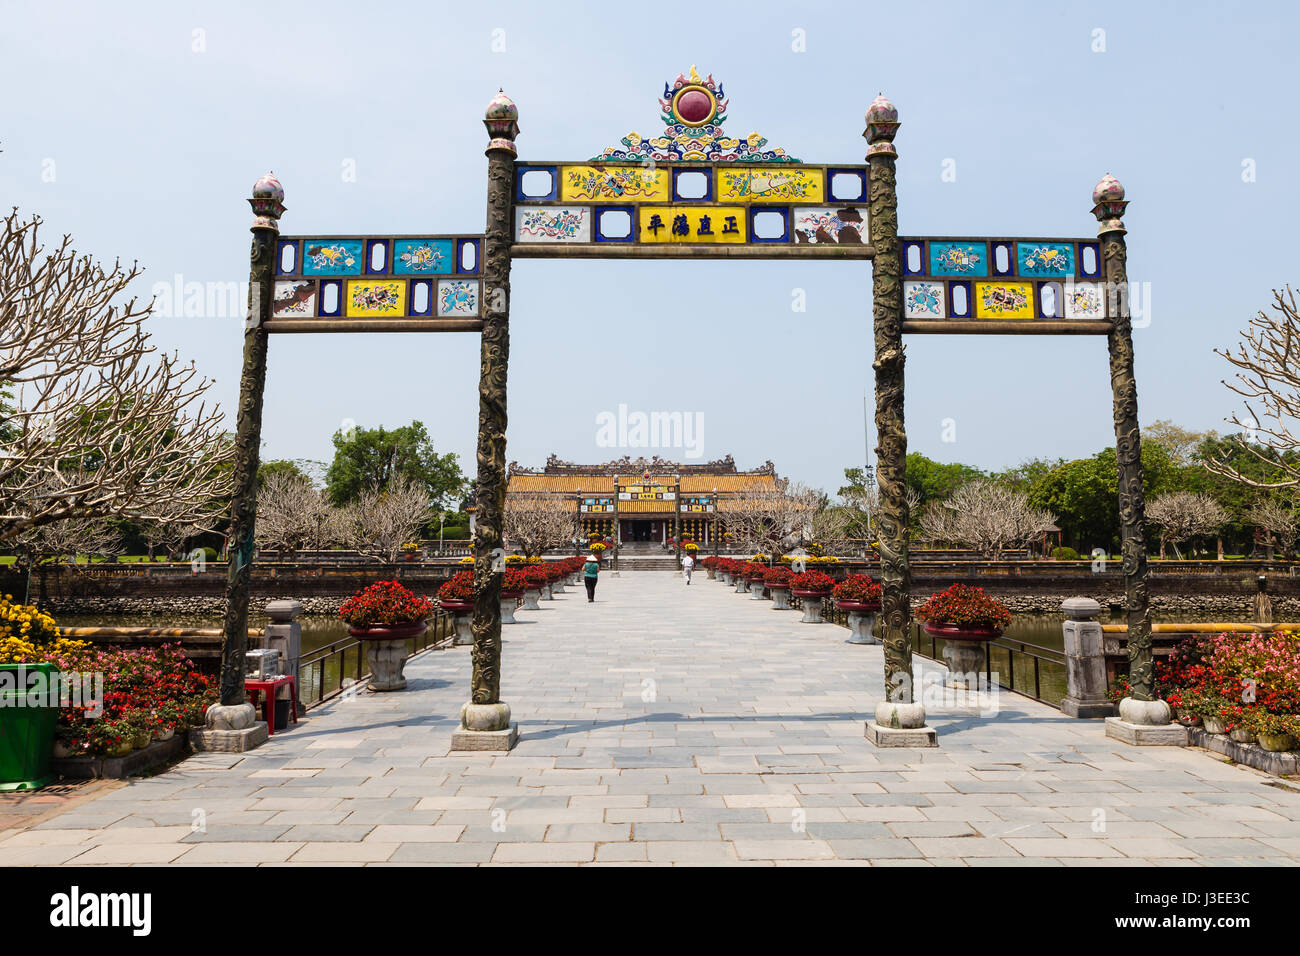 Hoi An, Vietnam - march 10 2017: Imperial Citadel (Imperial City), Hue, Vietnam Stock Photo